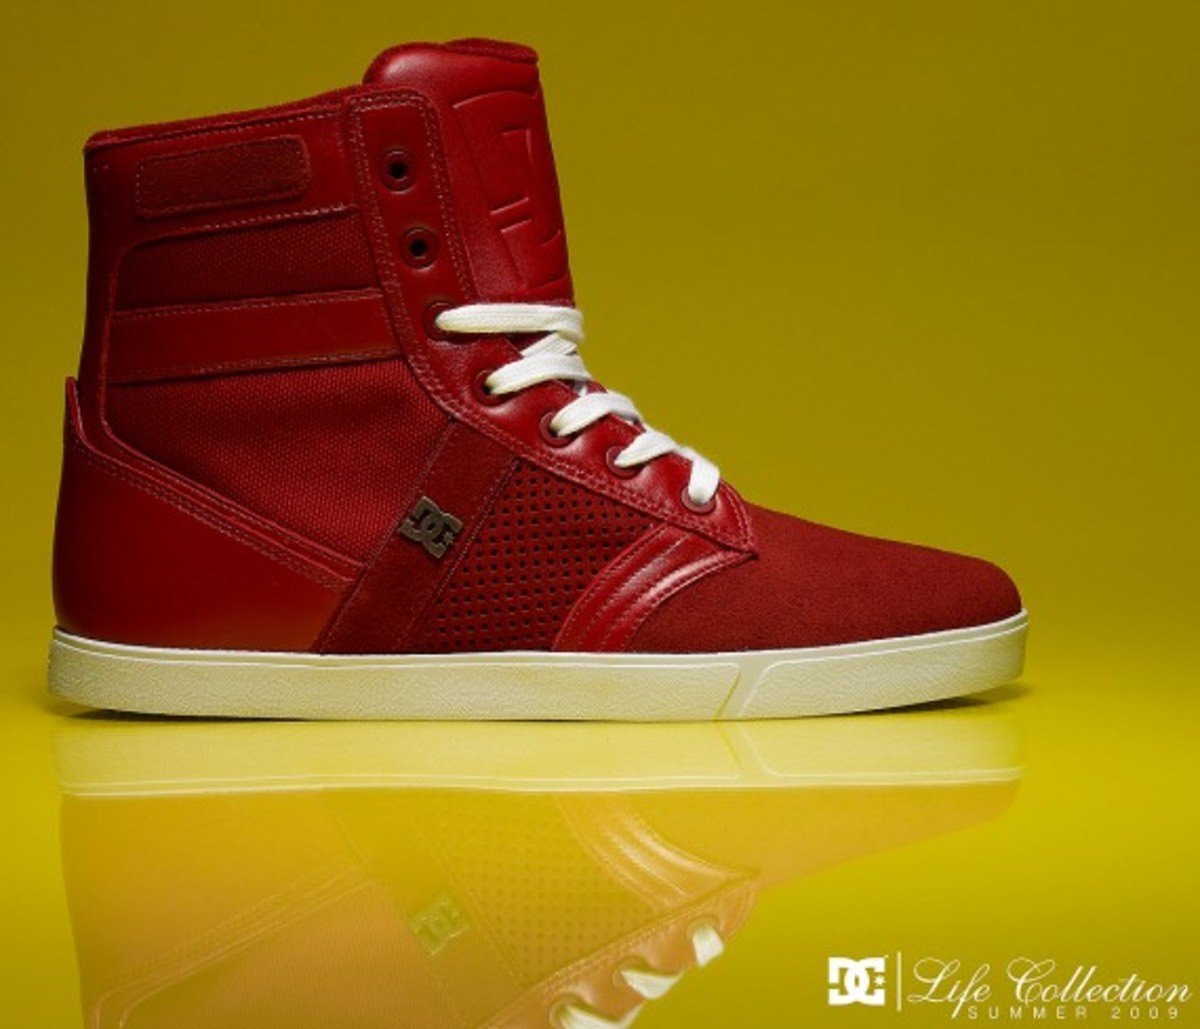 dc-rivington-hotel-summer-2009-admiral-t-red-01